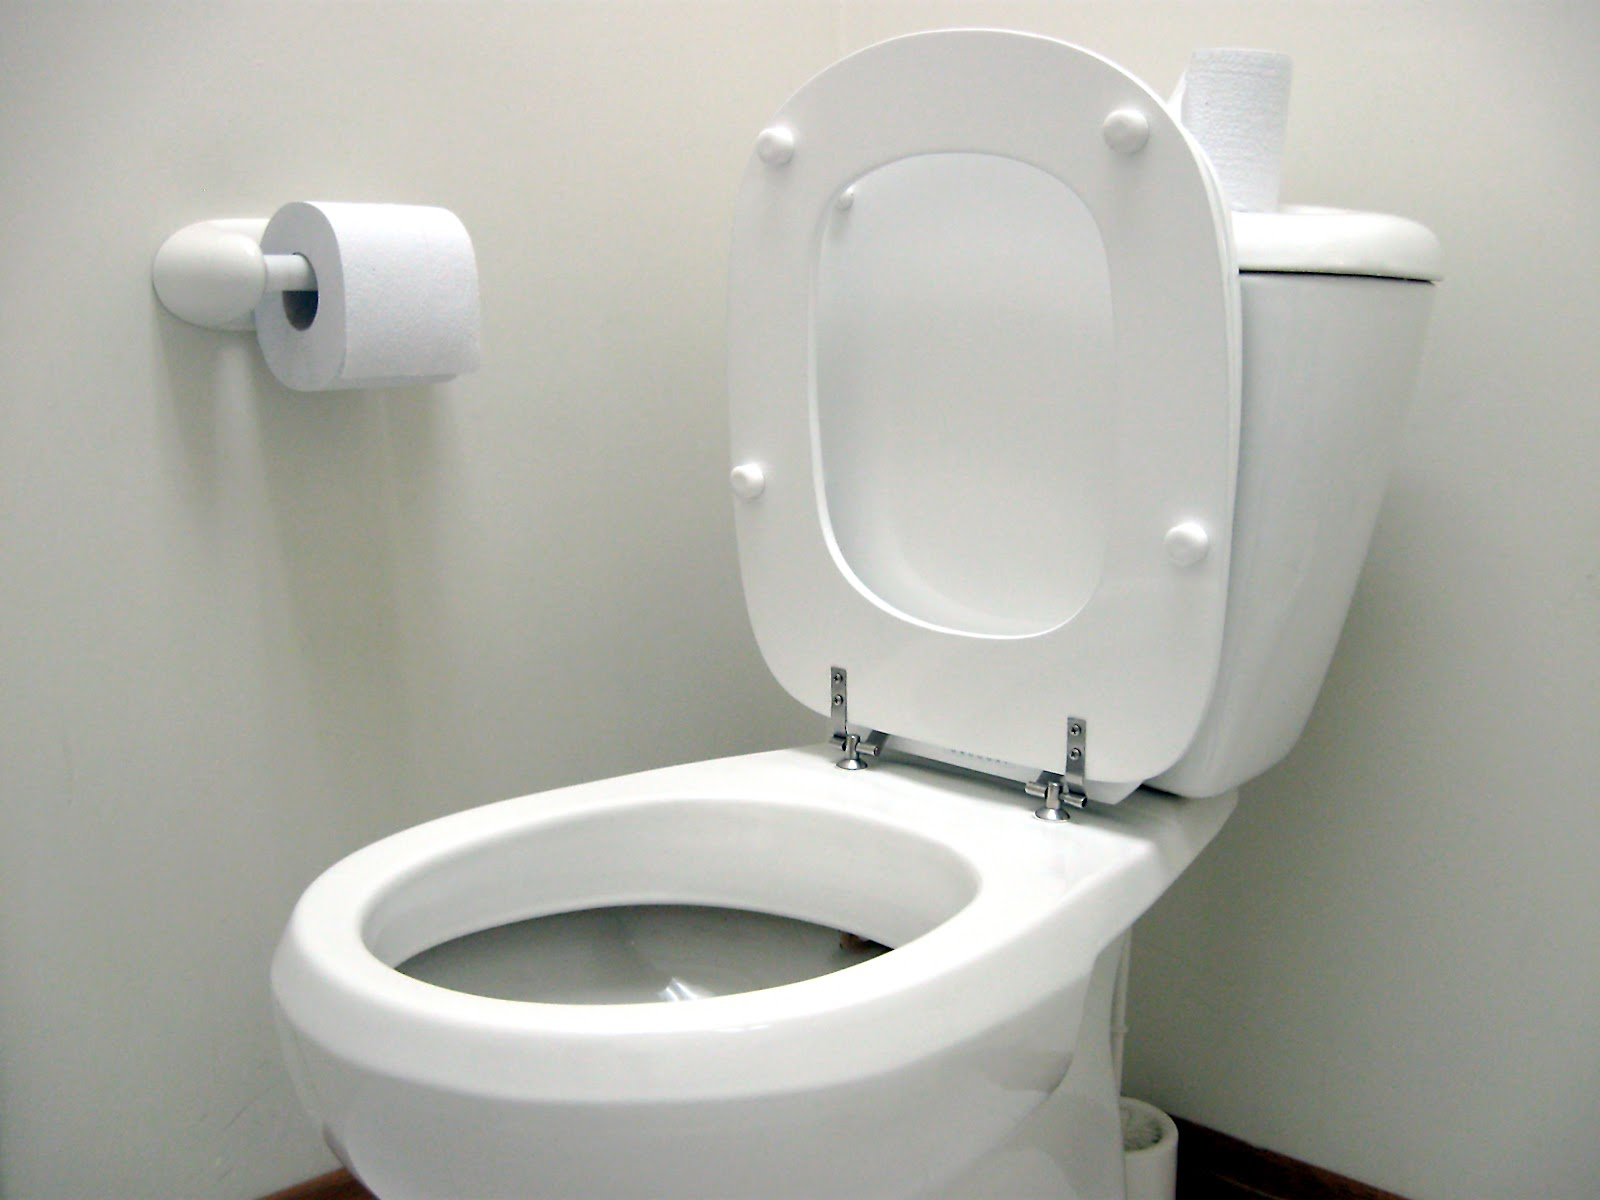 Suzanne Looms on Creativity, Innovation & Change: Leaving toilet